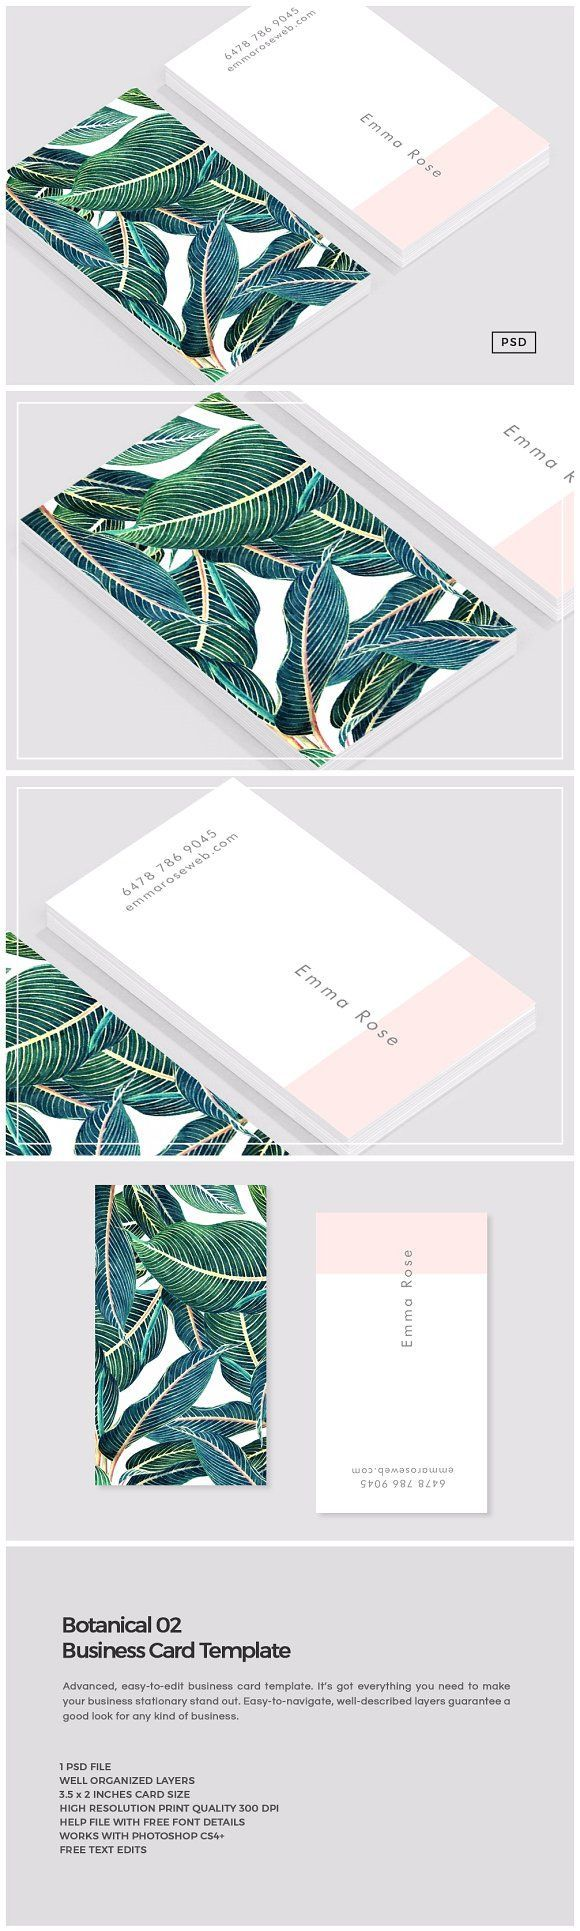 Botanical 02 Business Card Template  by The Design Label on @Creative Market